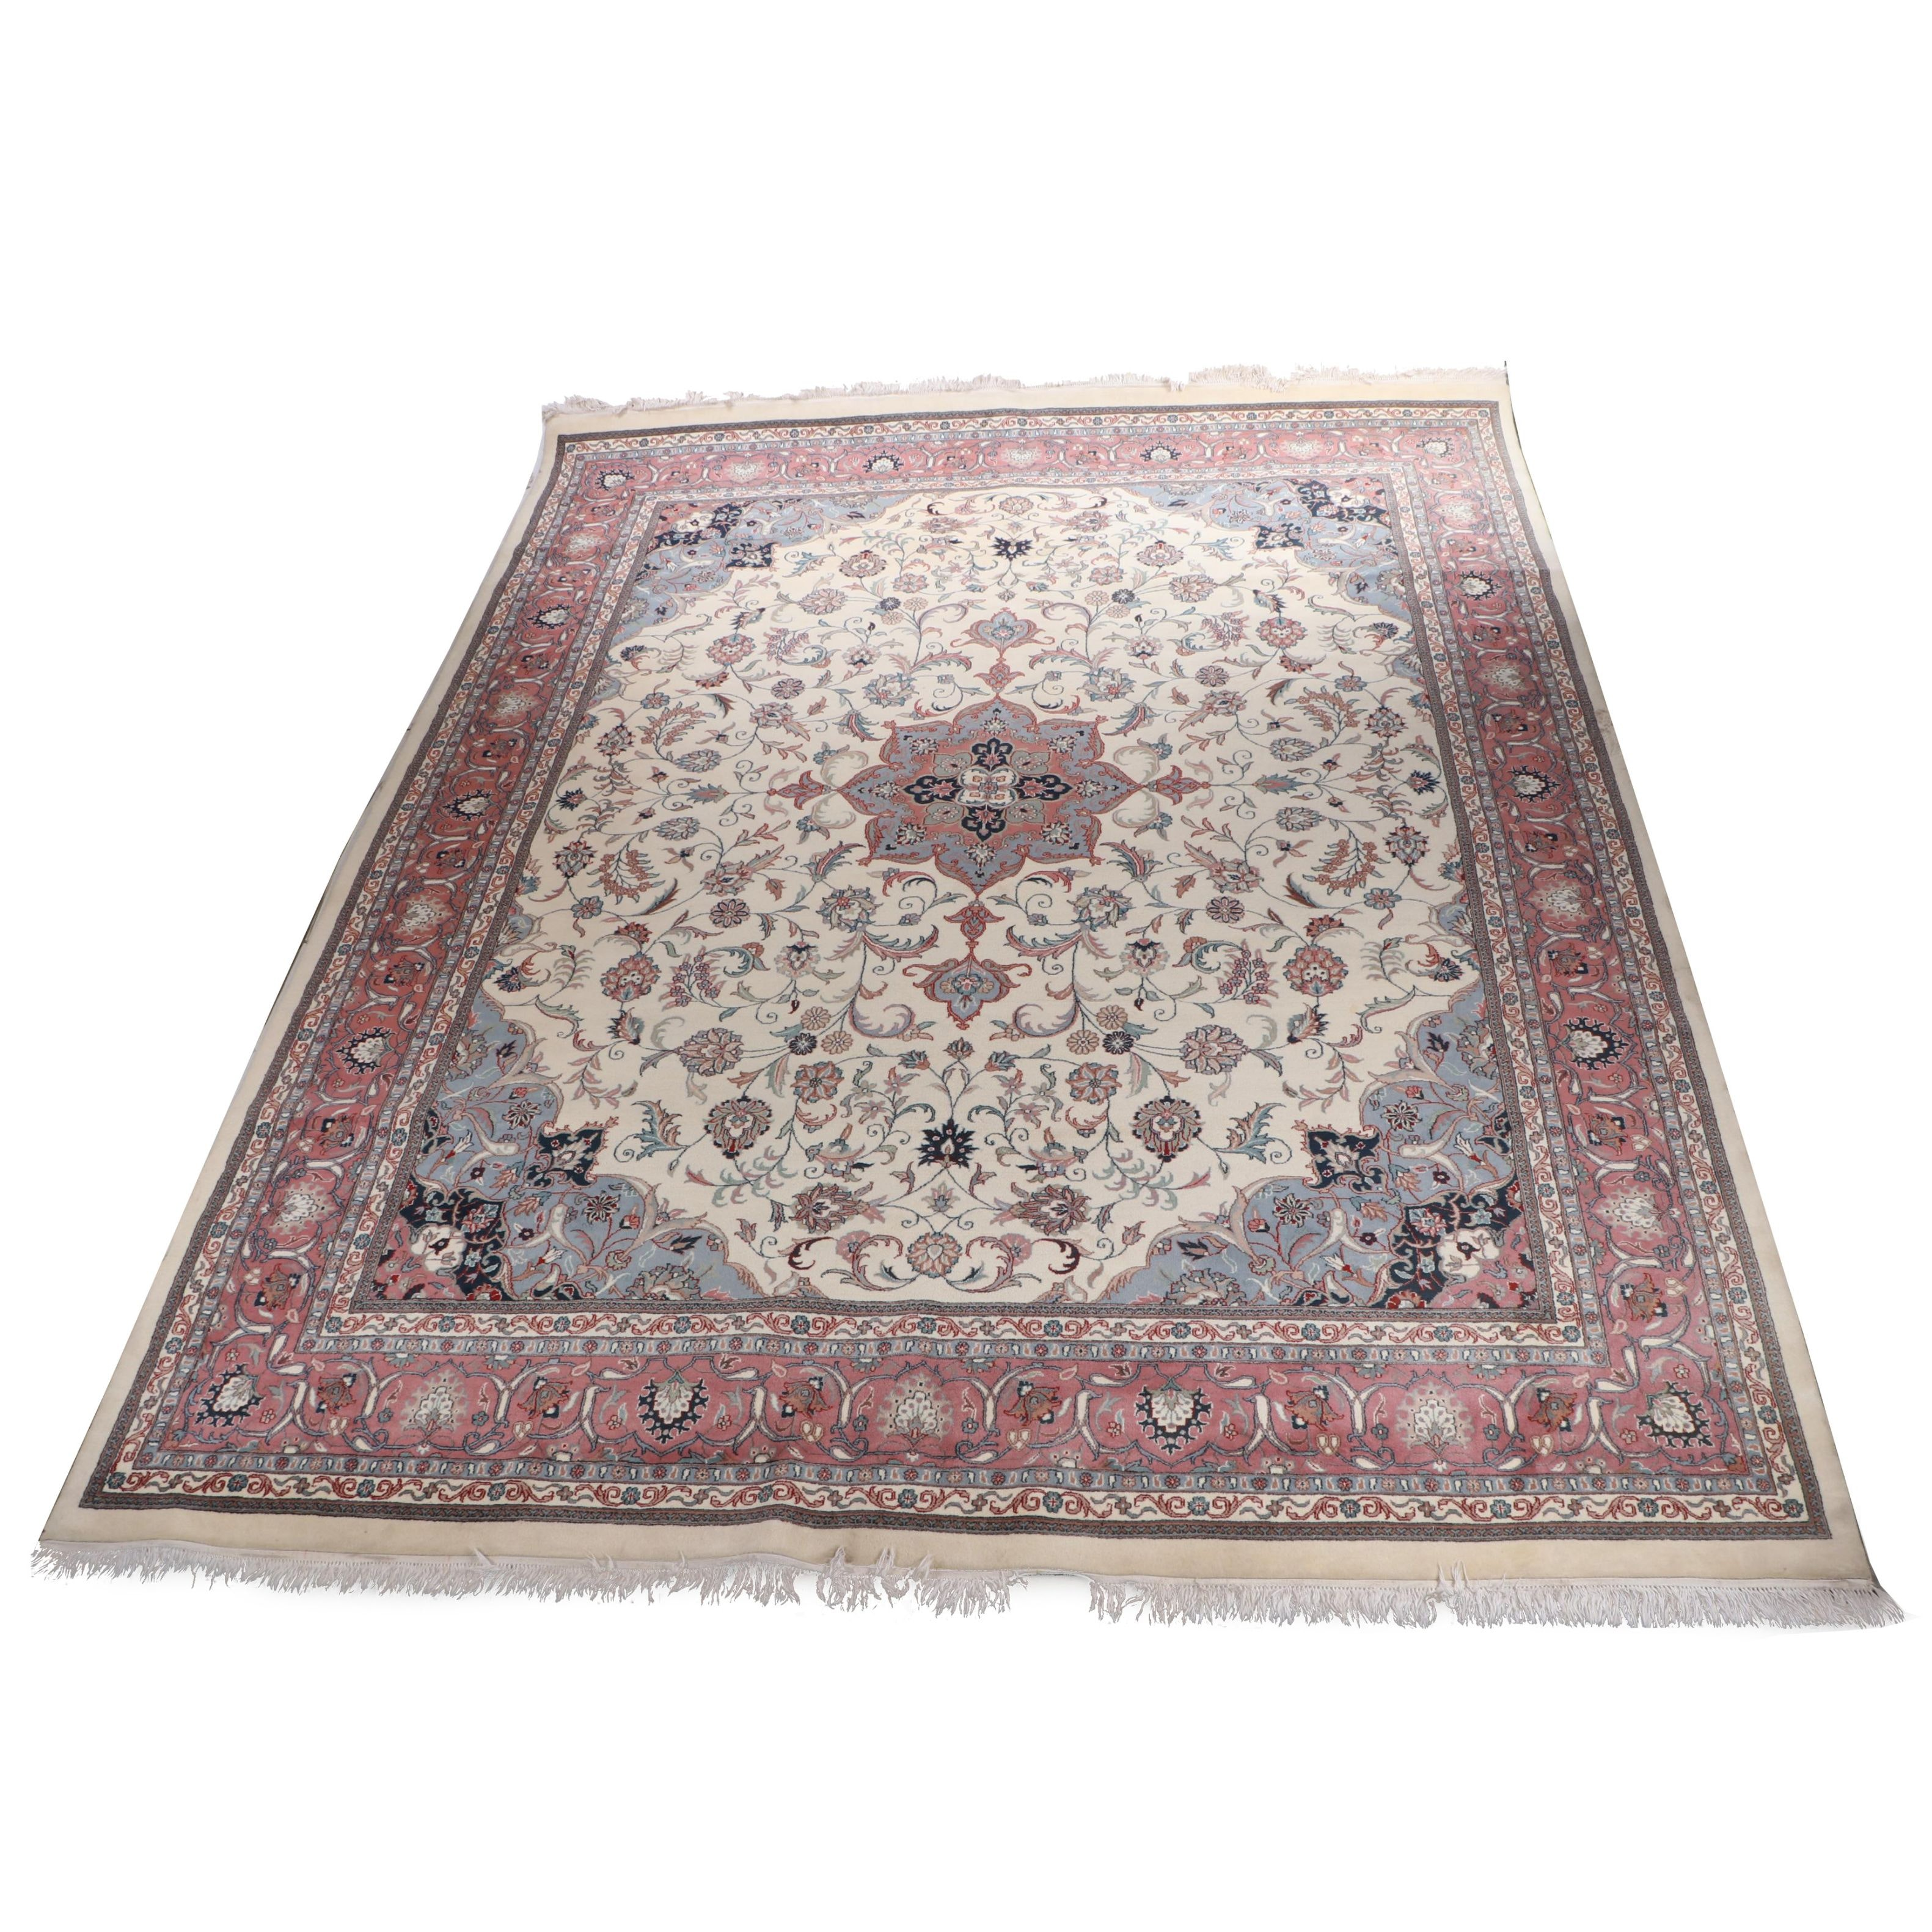 Hand-Knotted Indo-Persian Isfahan Wool Room Sized Rug